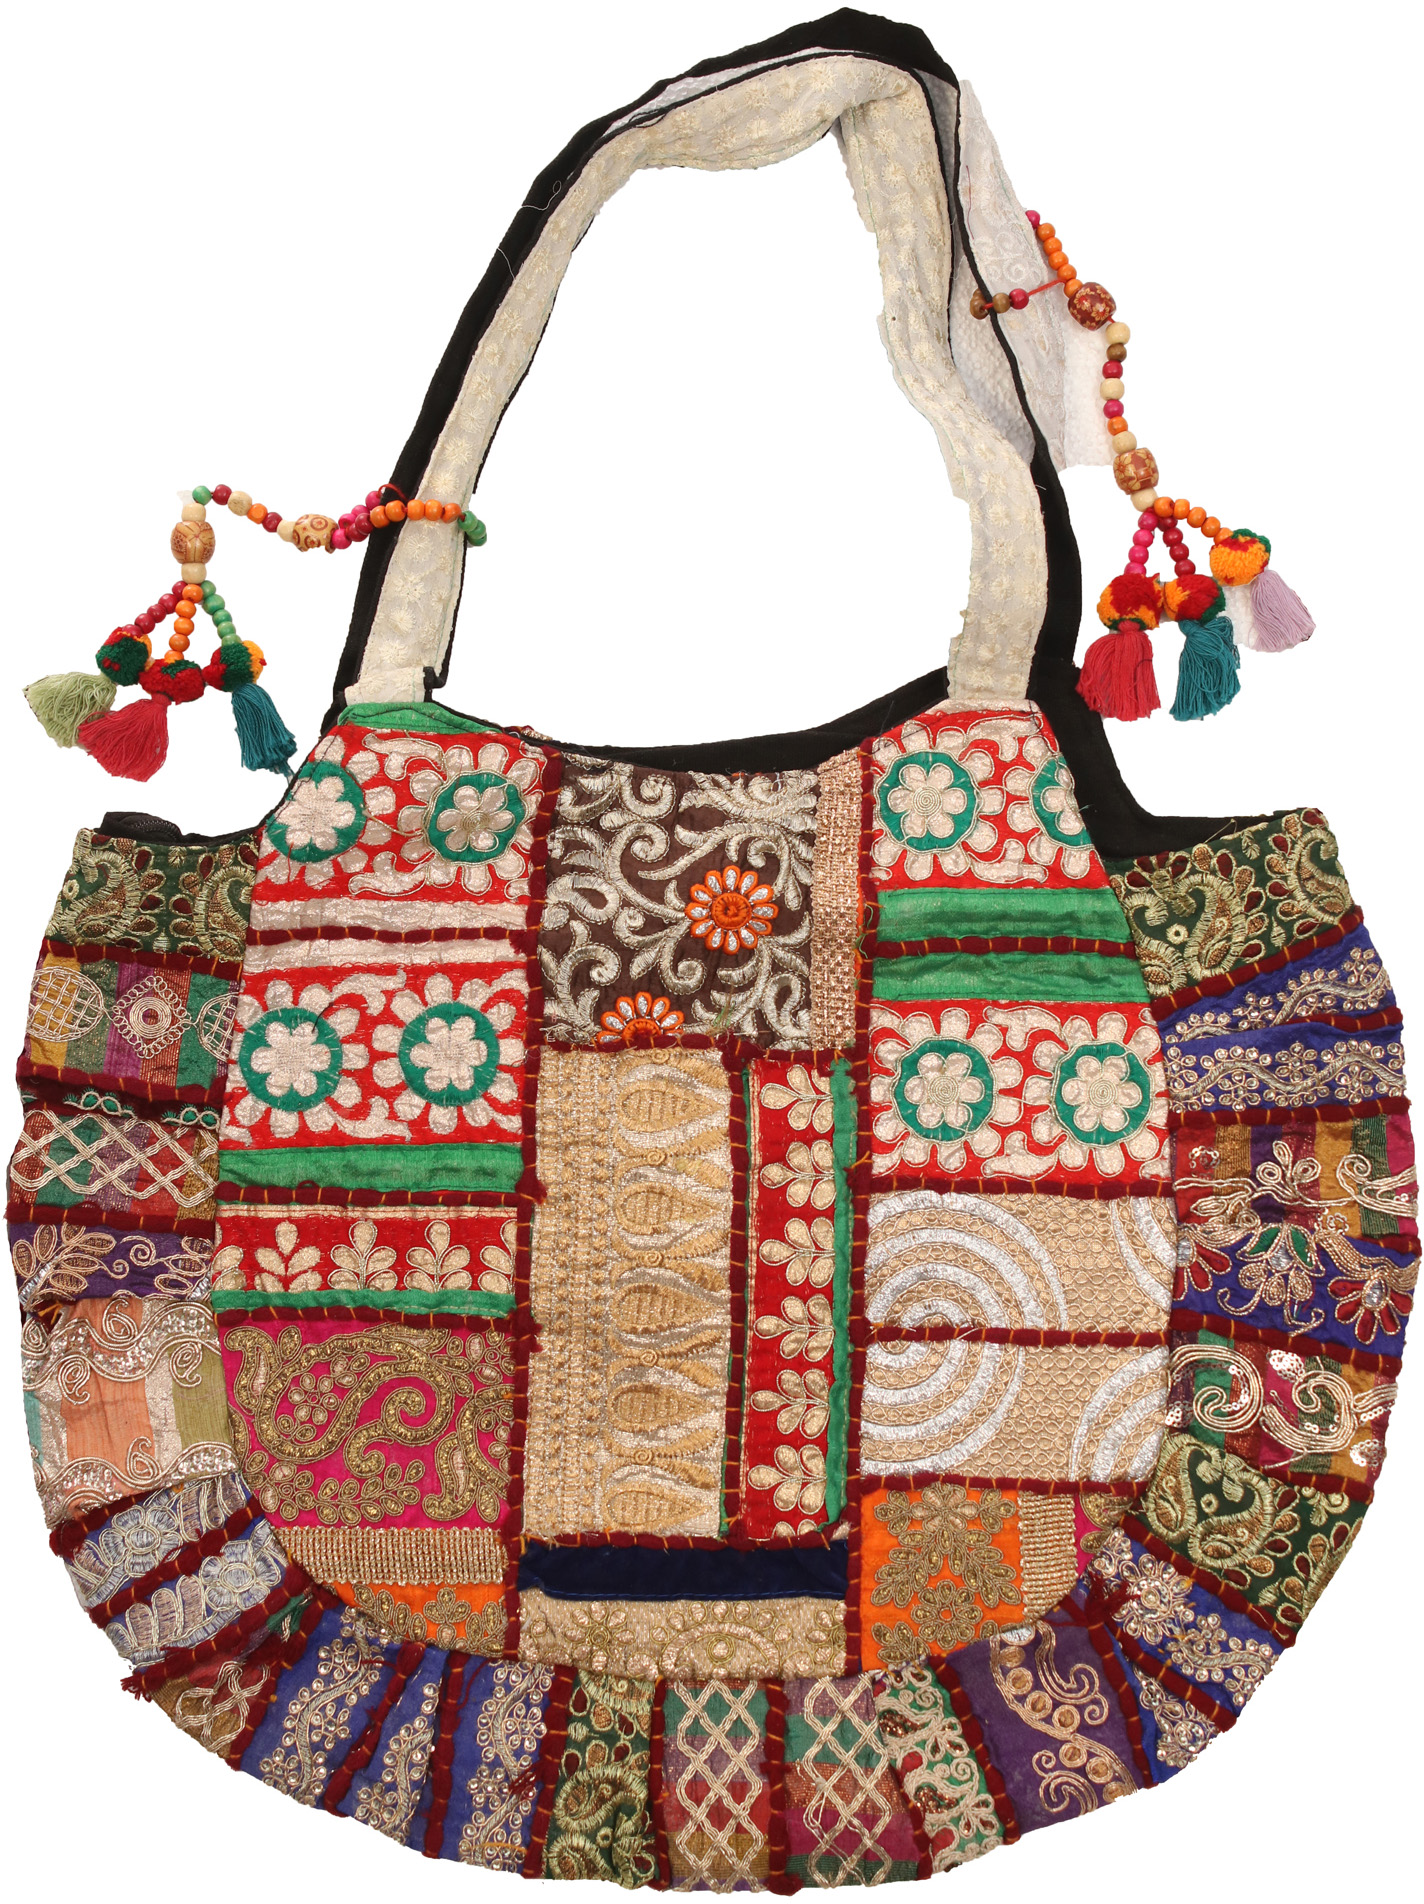 Shopper bag from kutch with embroidered elephants and mirrors